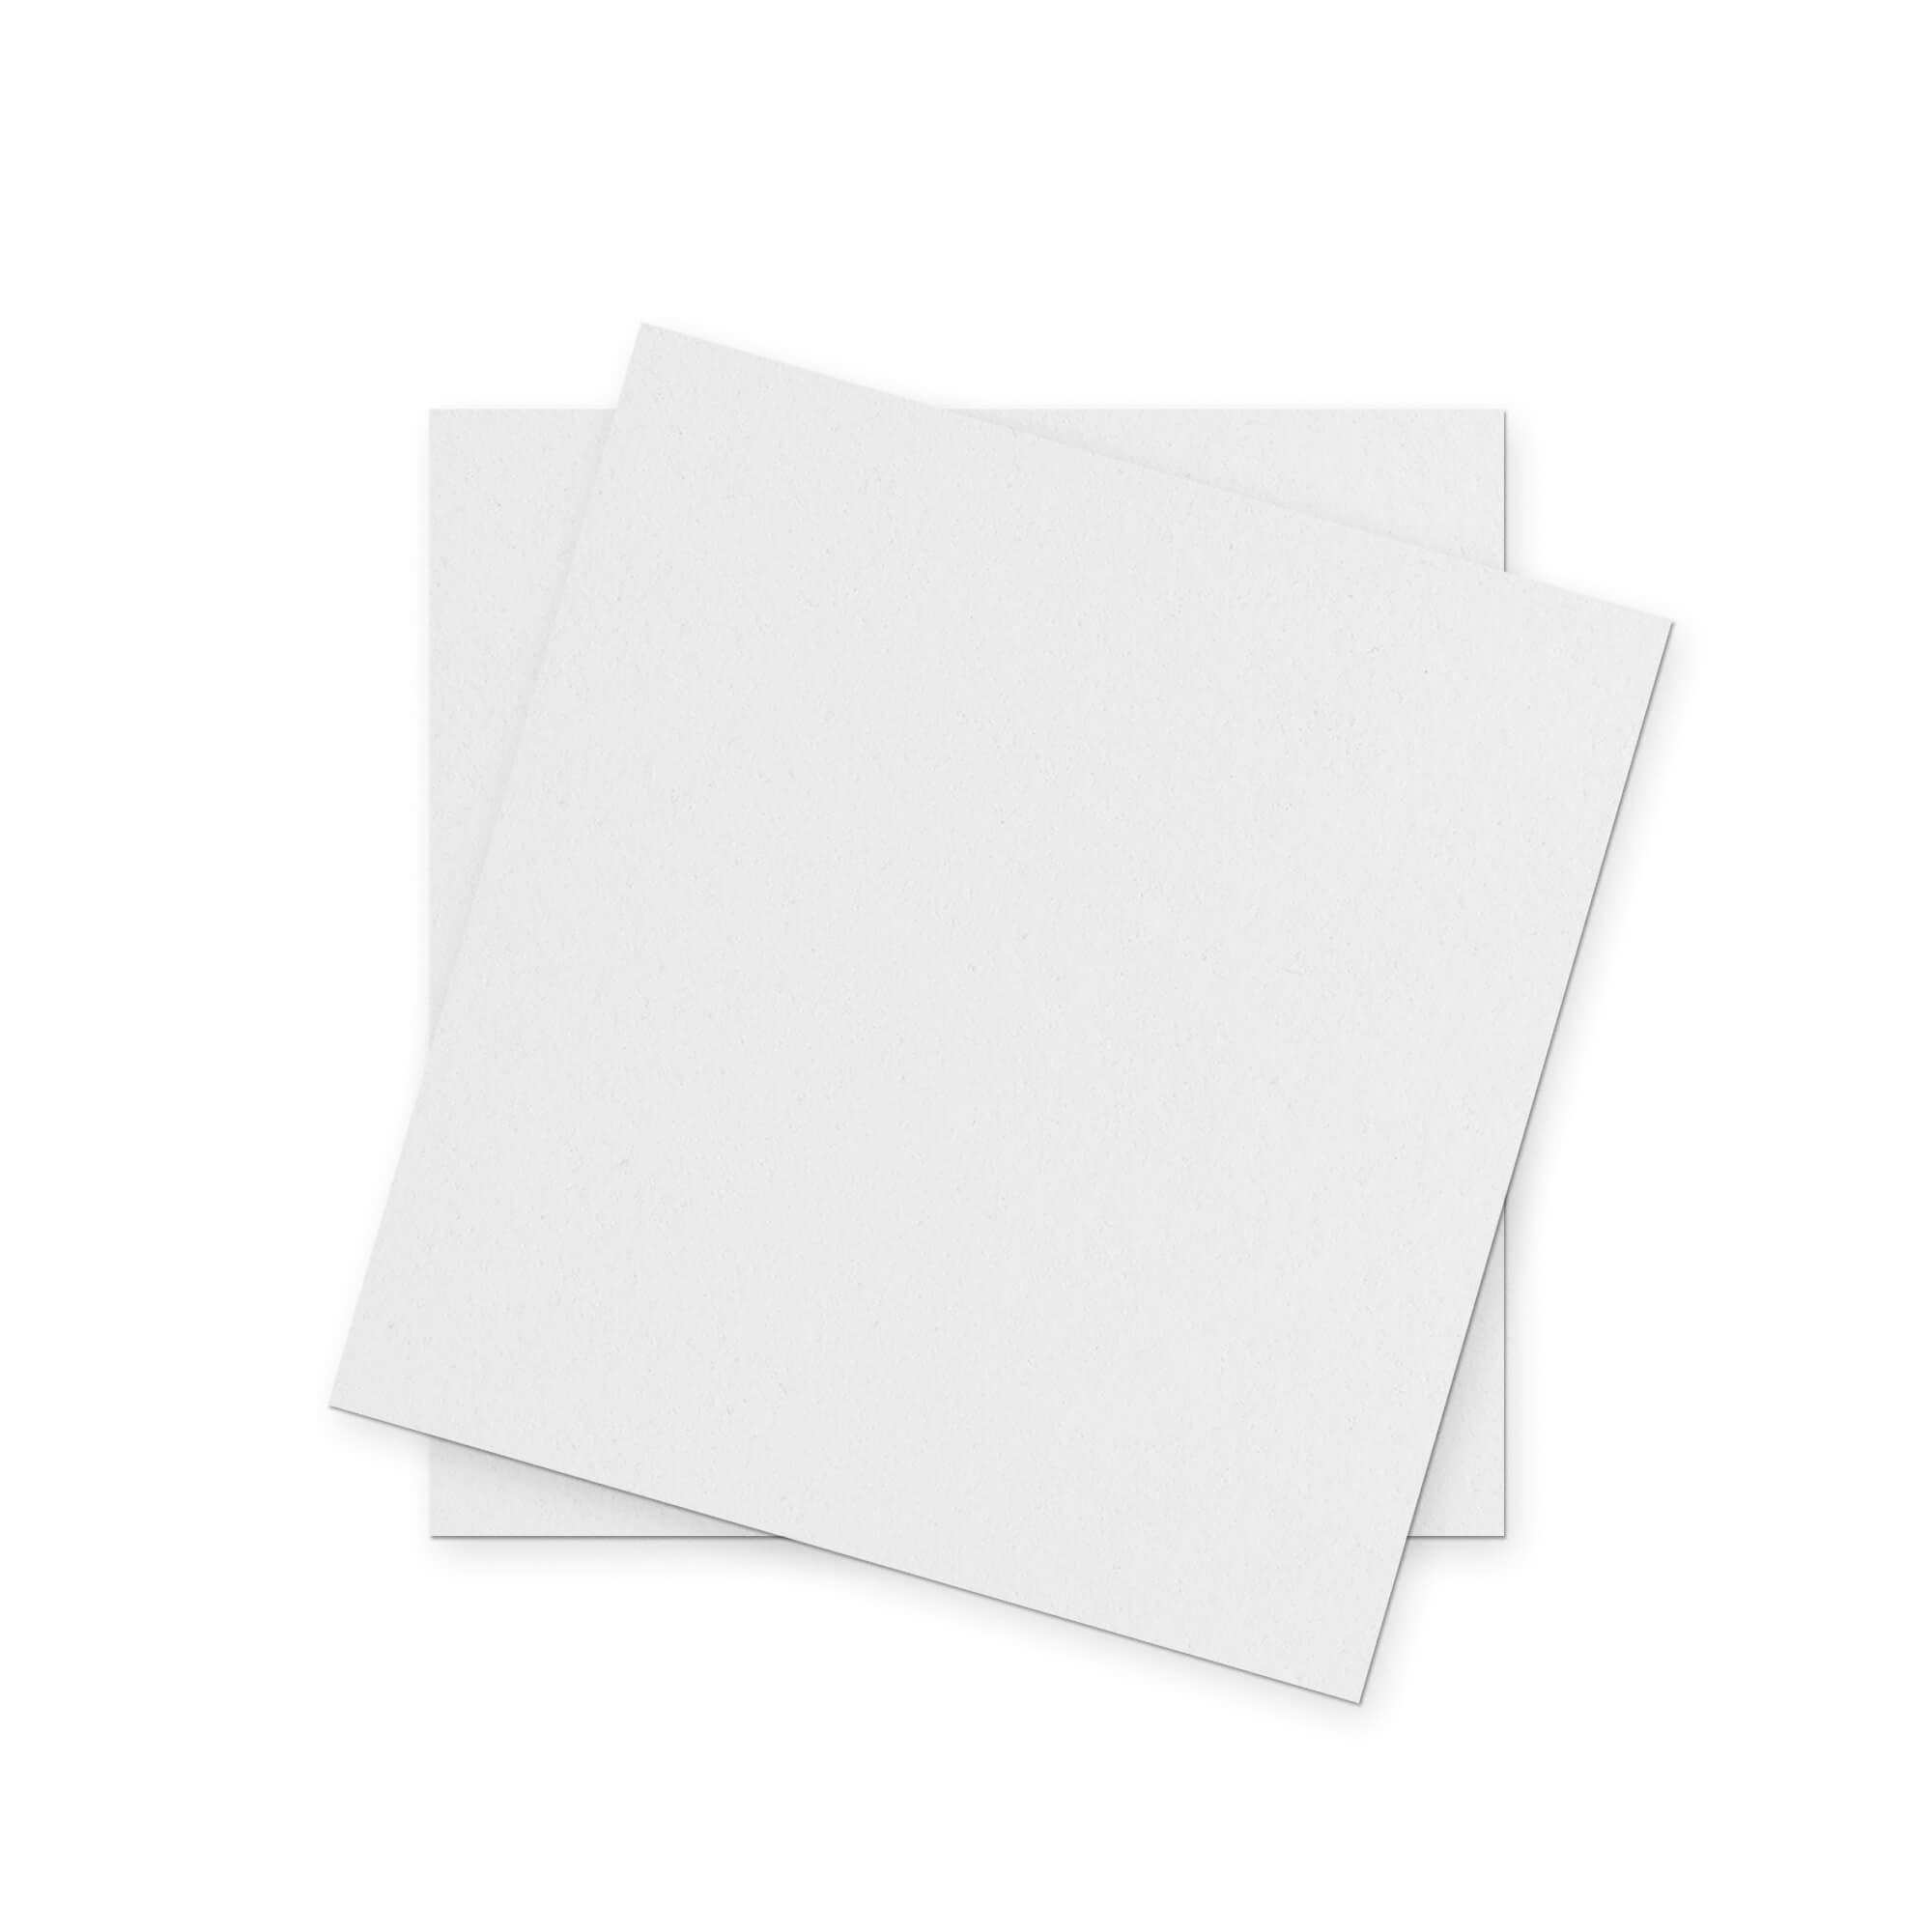 Blank Free Square Paper Mockup PSD Template